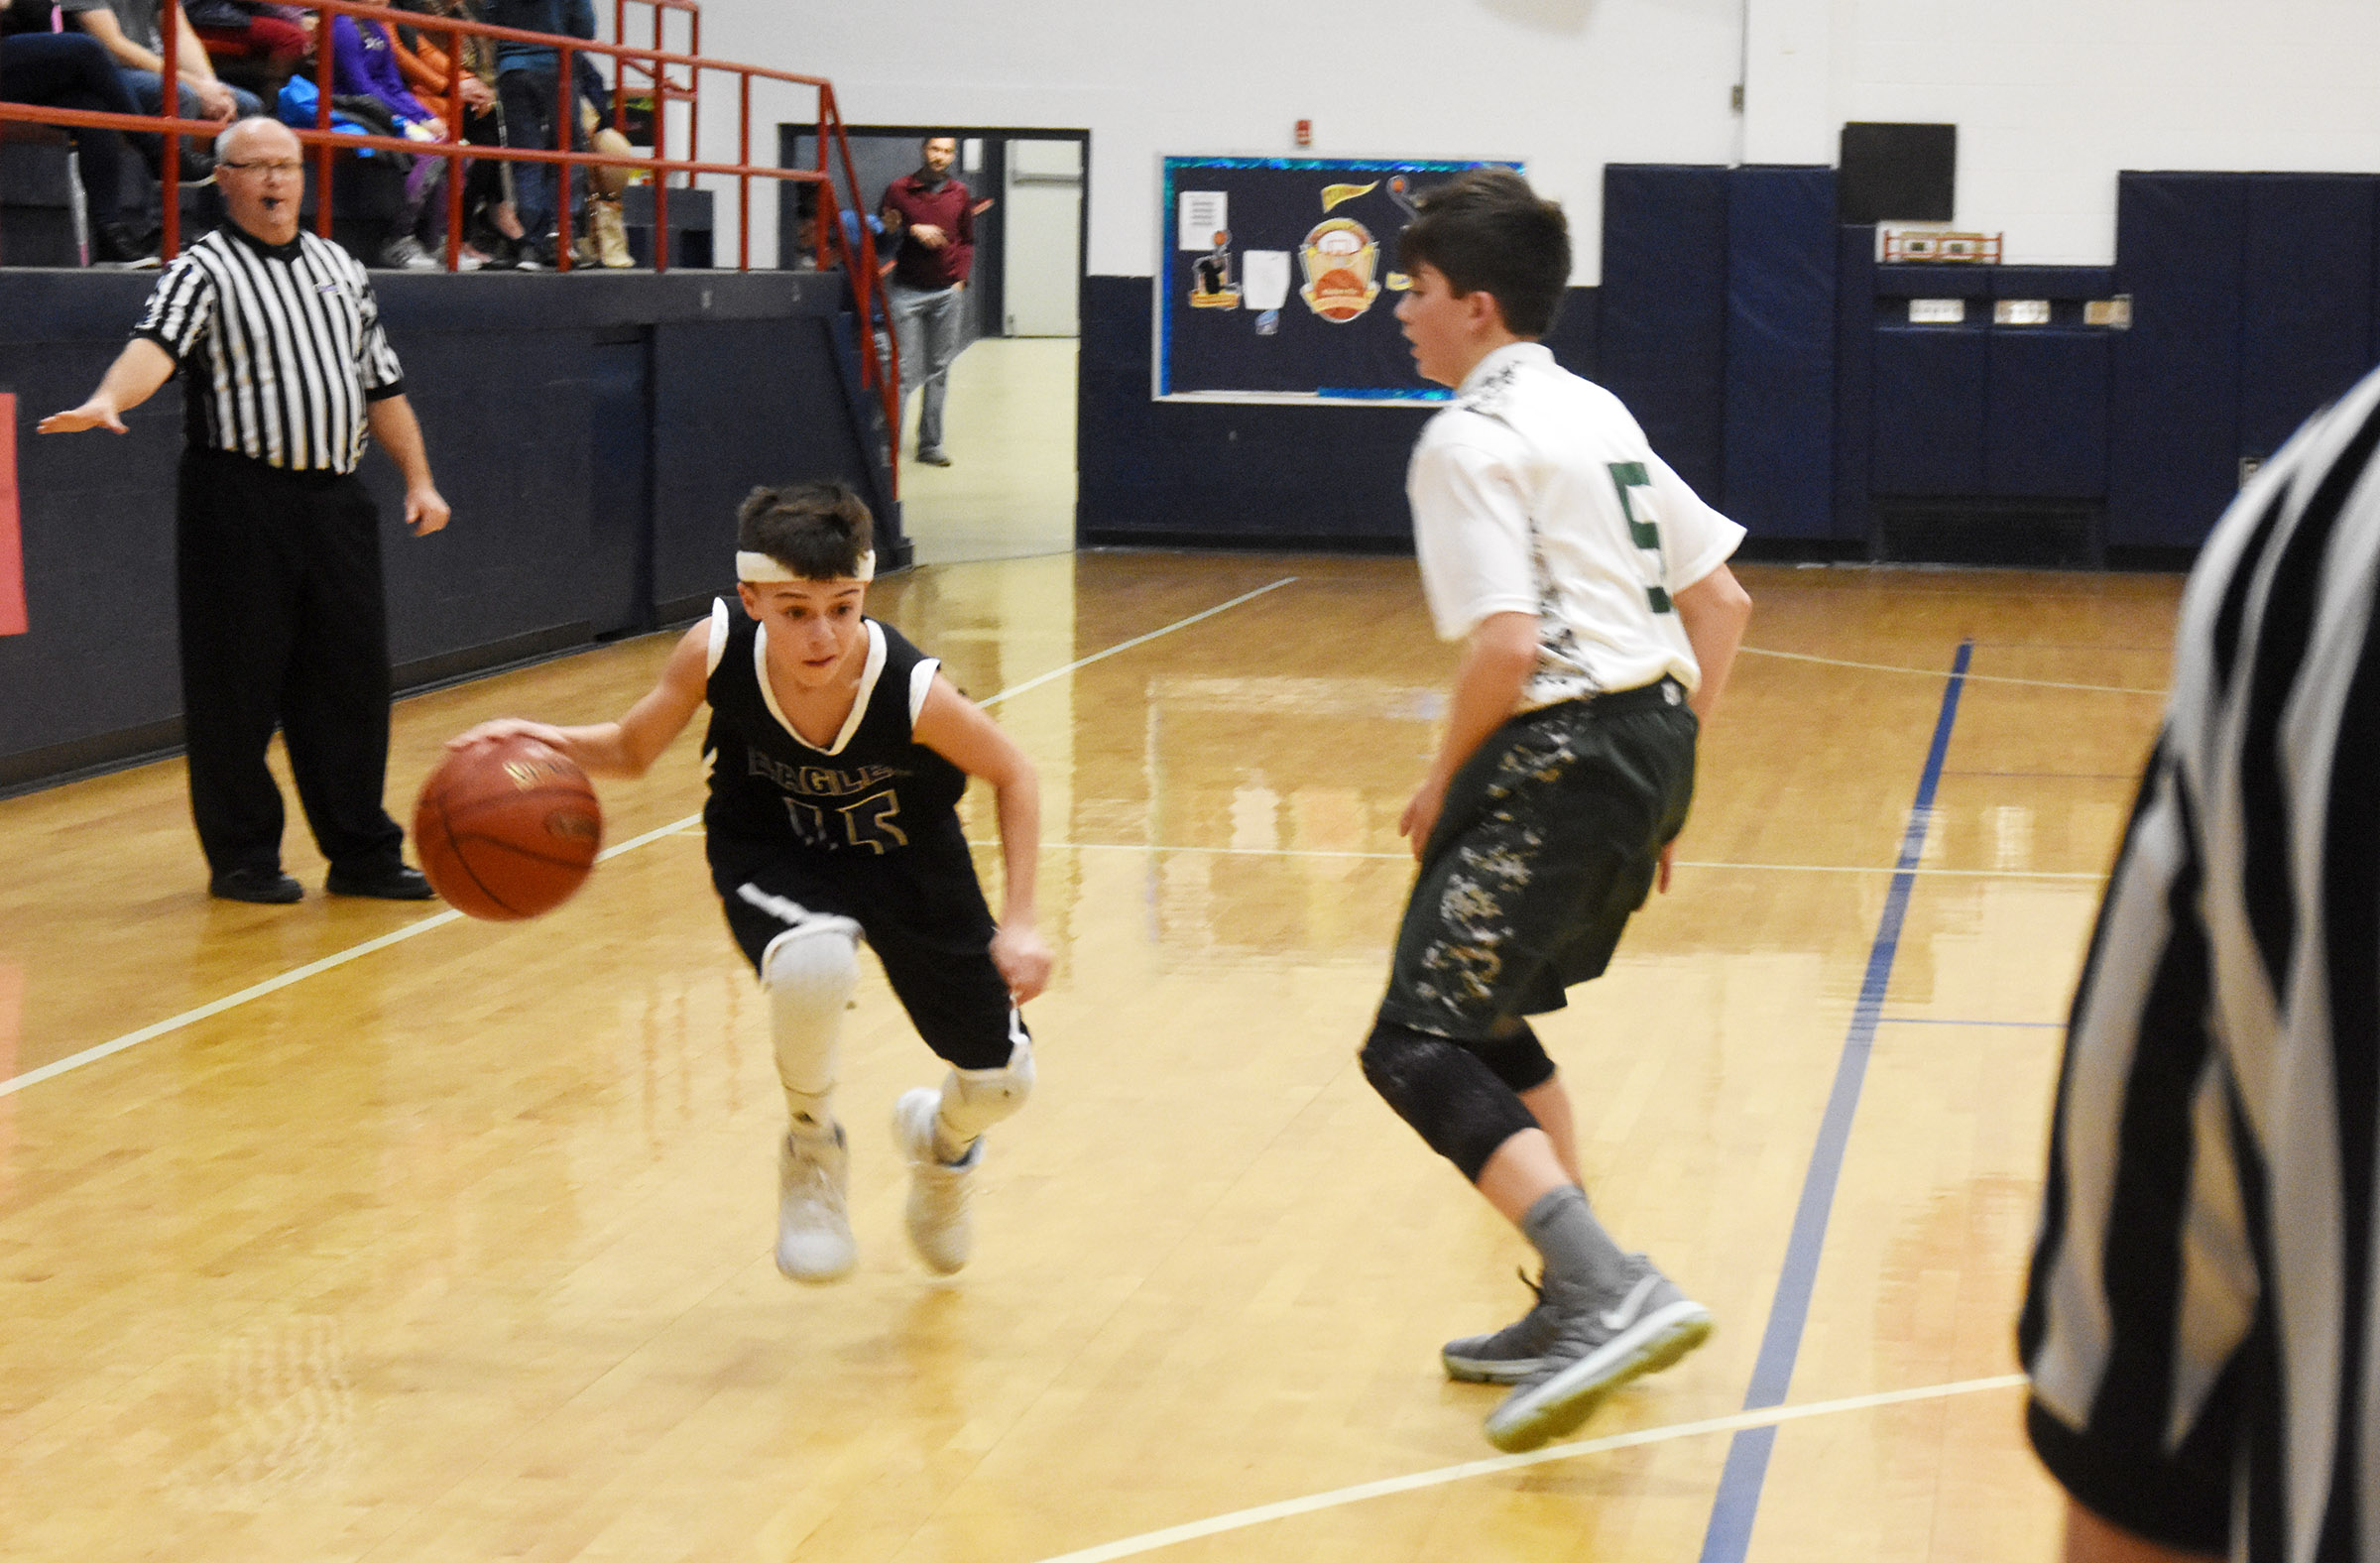 CMS seventh-grader Chase Hord drives the ball.